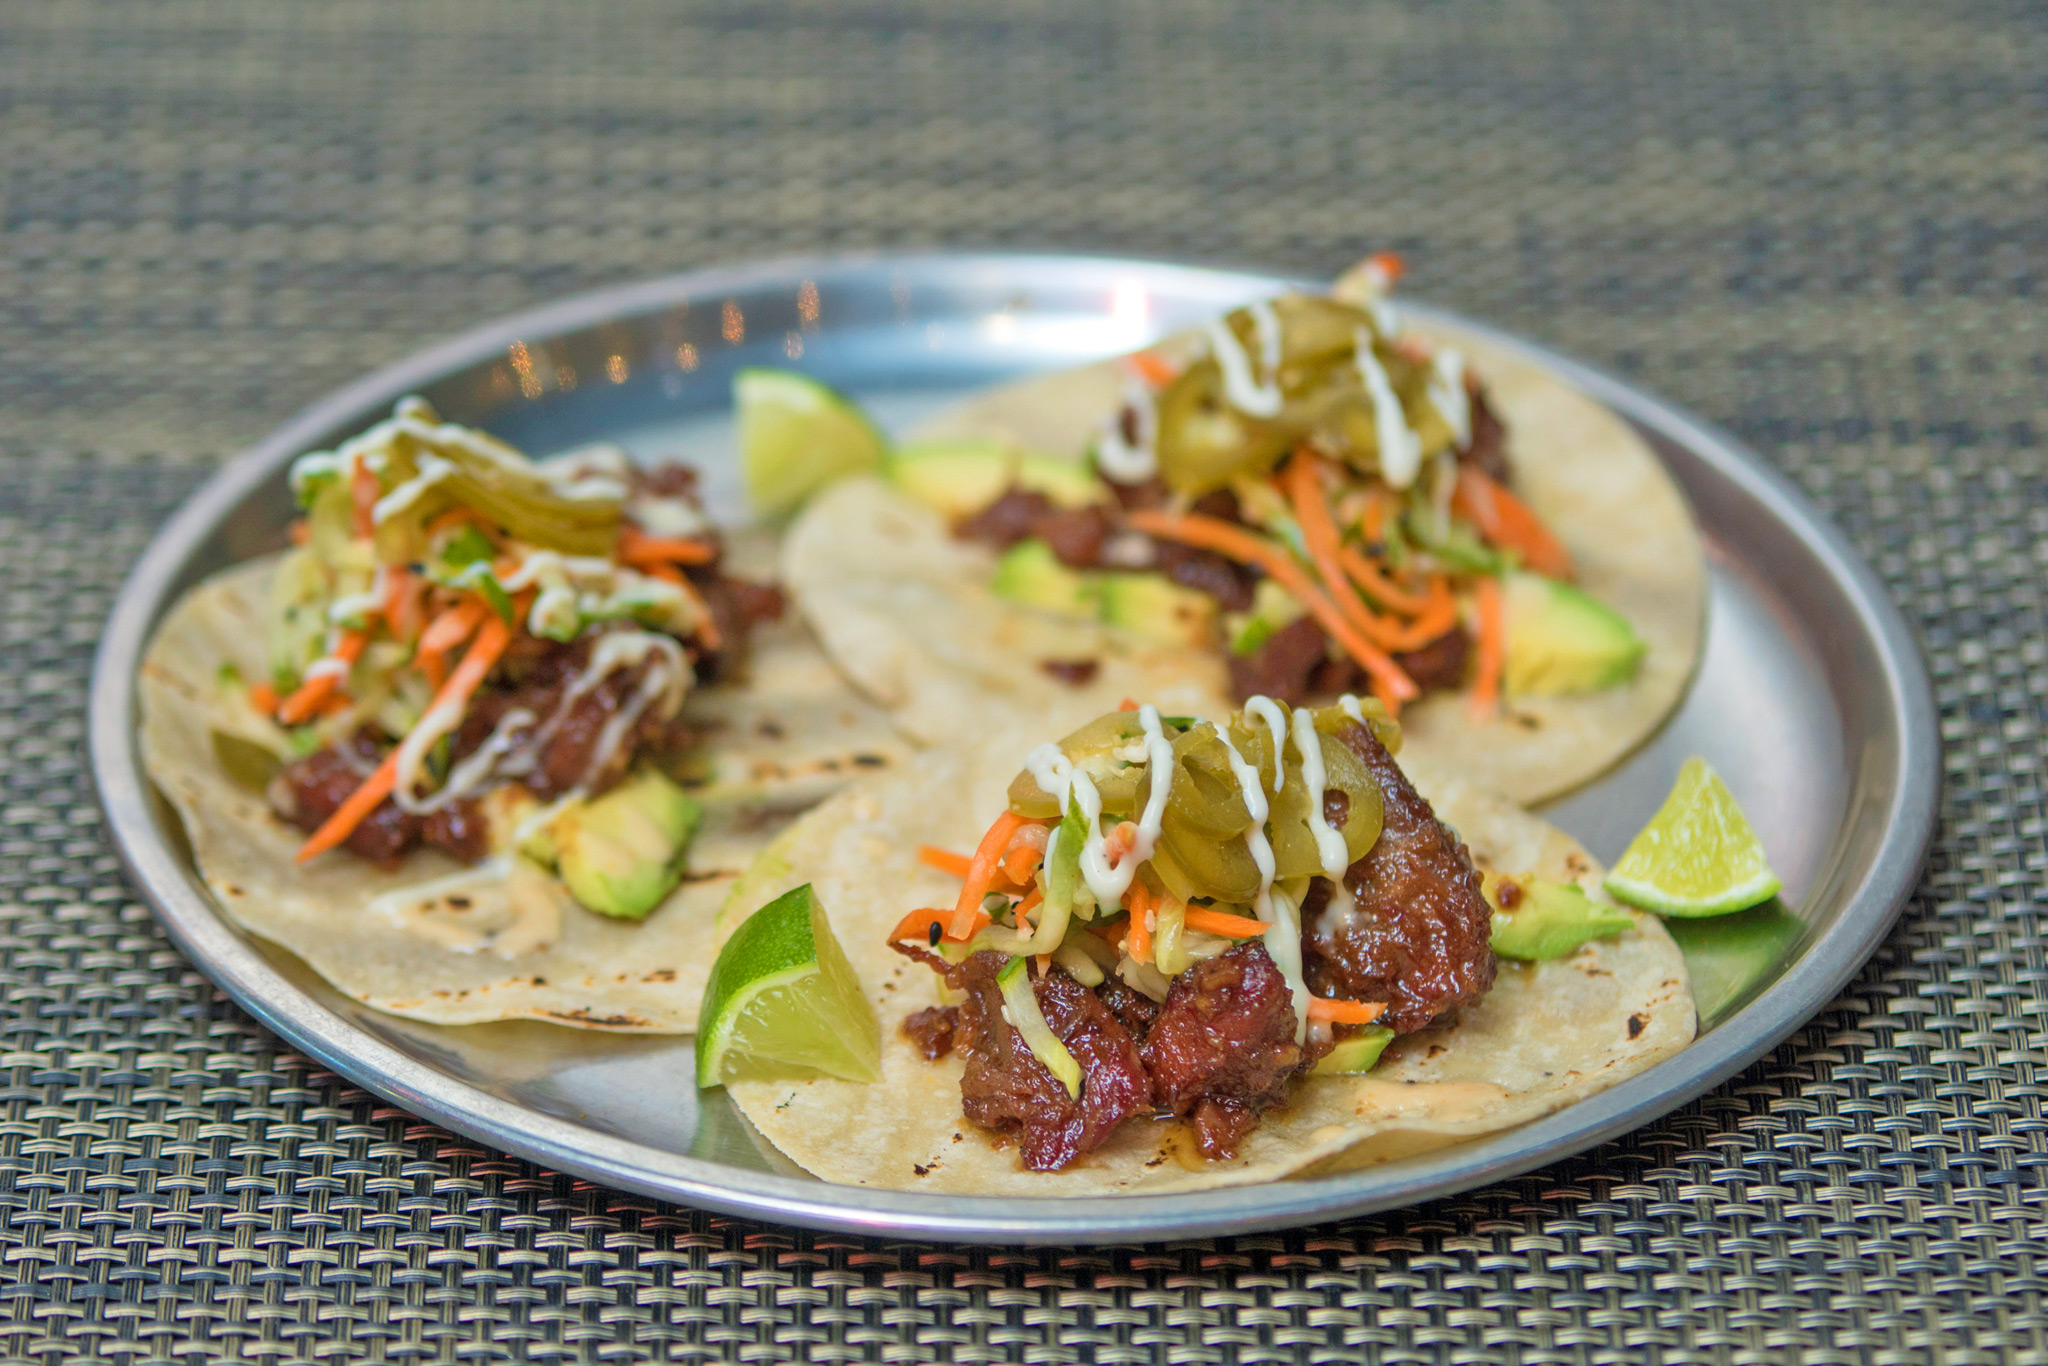 Crispy Sweet Pork Tacos - avocado, cucumber-carrot salad, blood orange mojo, garlic crema, pickled jalapeno